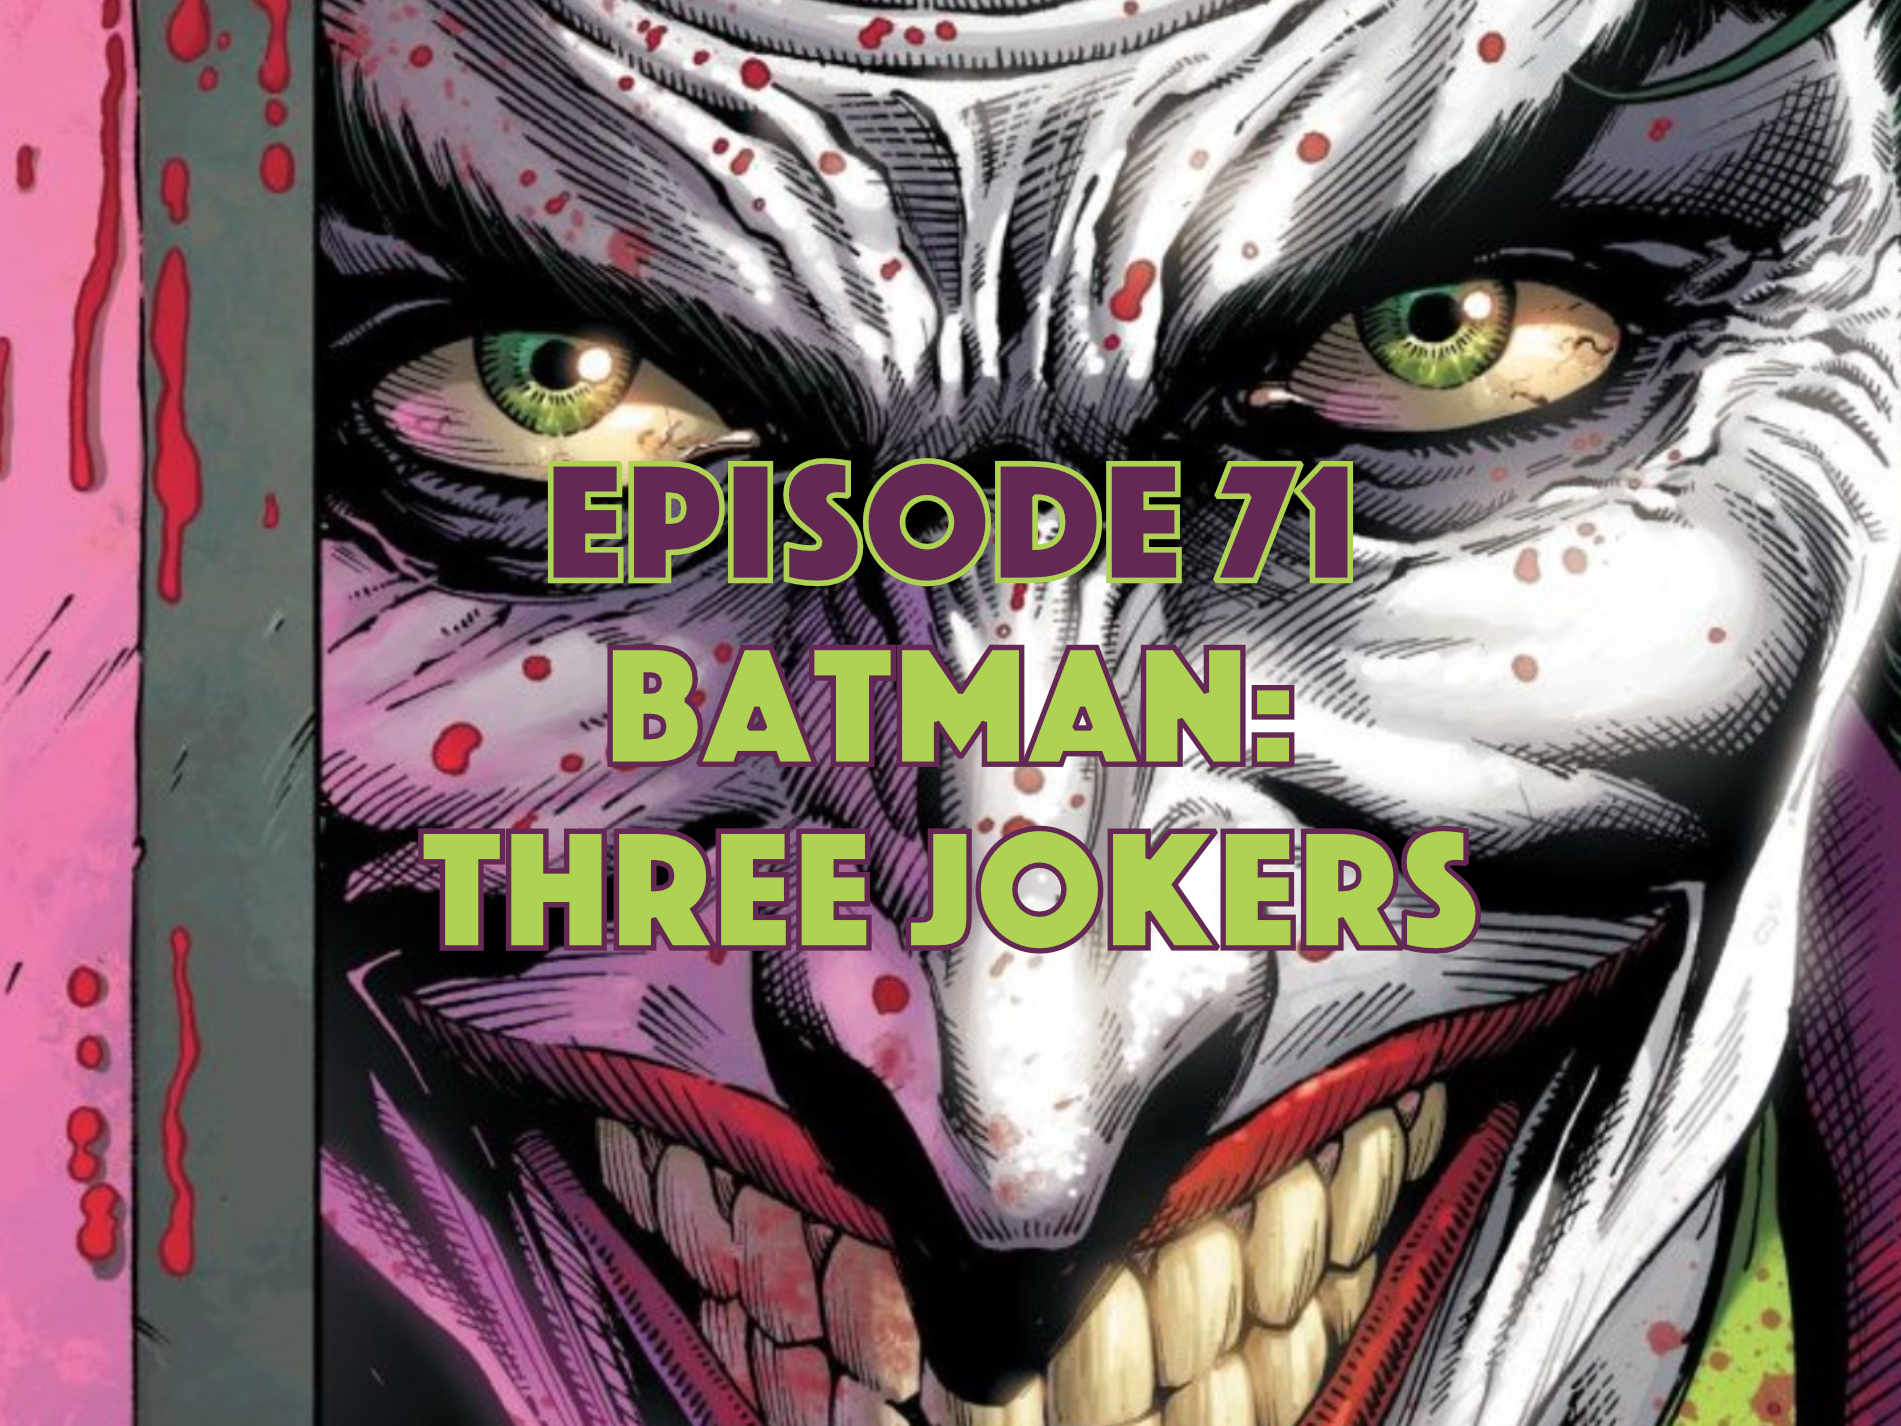 Batman Three Jokers, Three Jokers, Graphic Novel Explorers Club, Comic Book Podcast, Graphic Novel Podcast